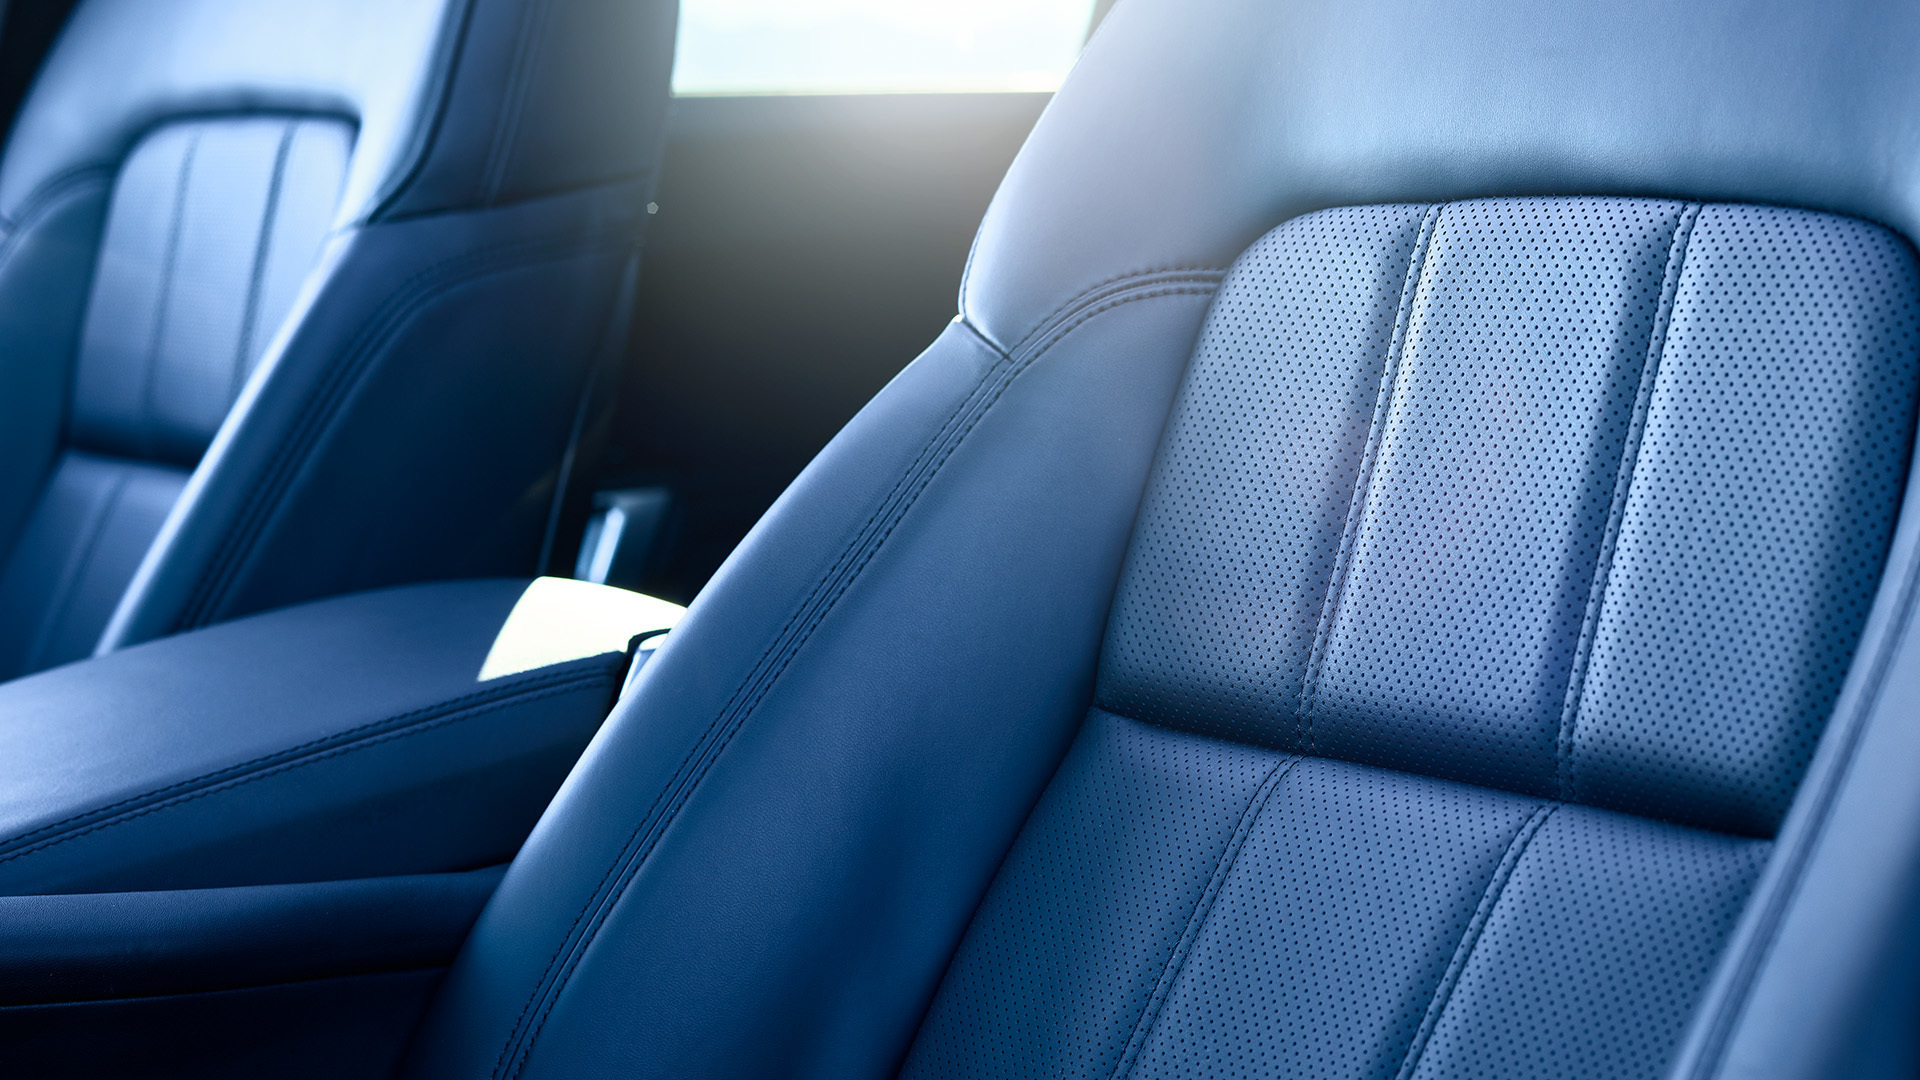 Comfortable front seats in car in sun light